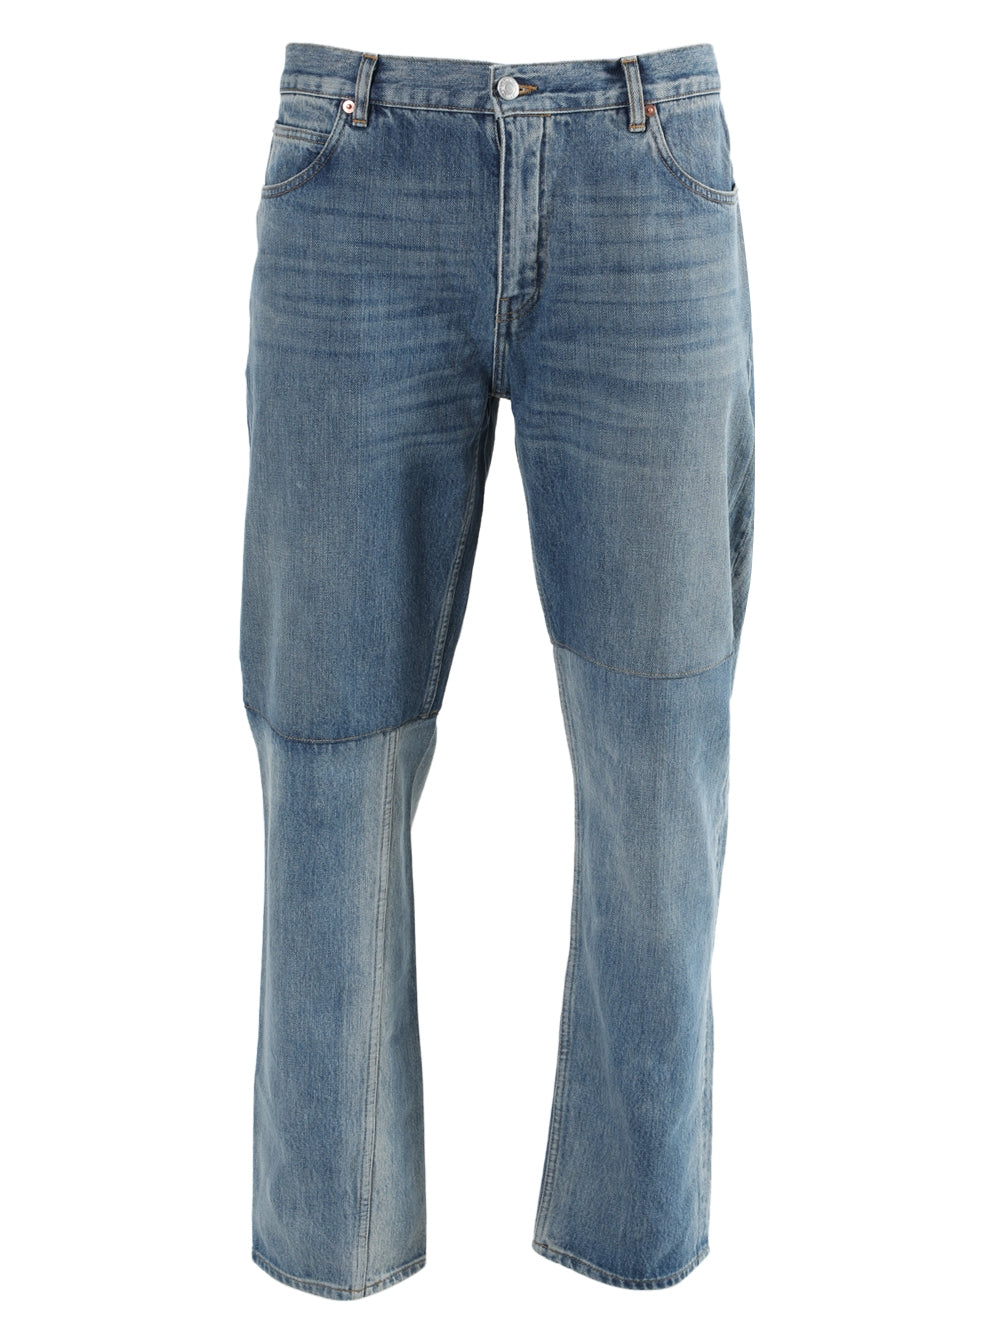 Blue Two-Tone Straight Leg Jeans